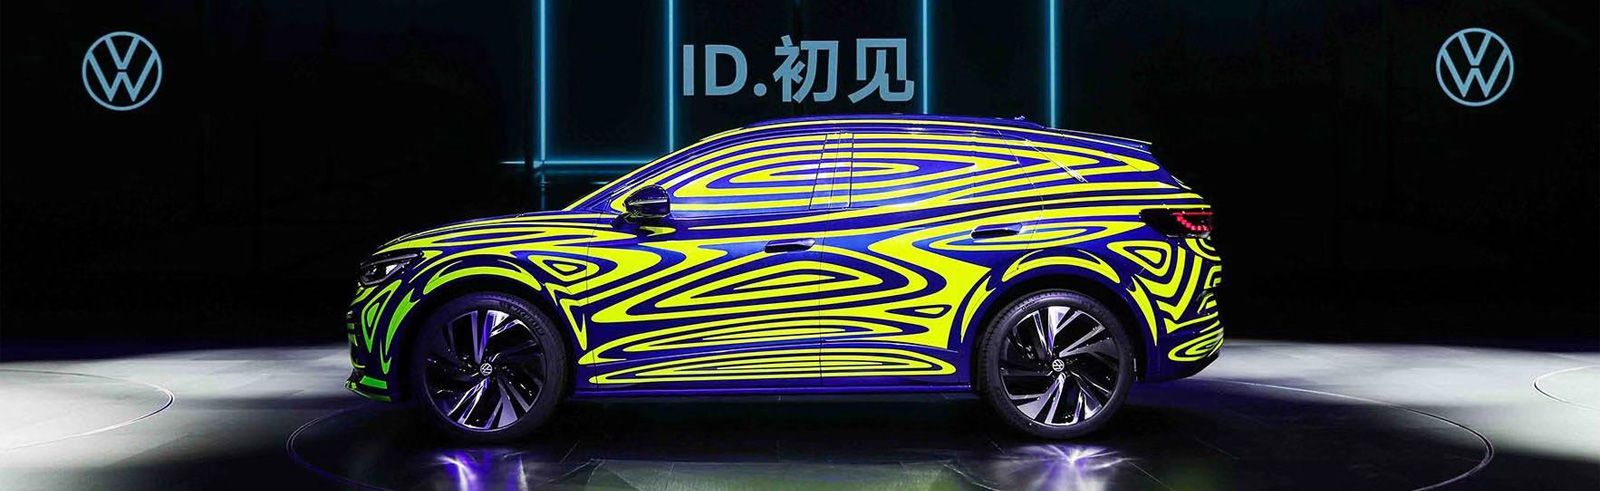 Volkswagen presents new products, new logo and new goals to the Chinese market